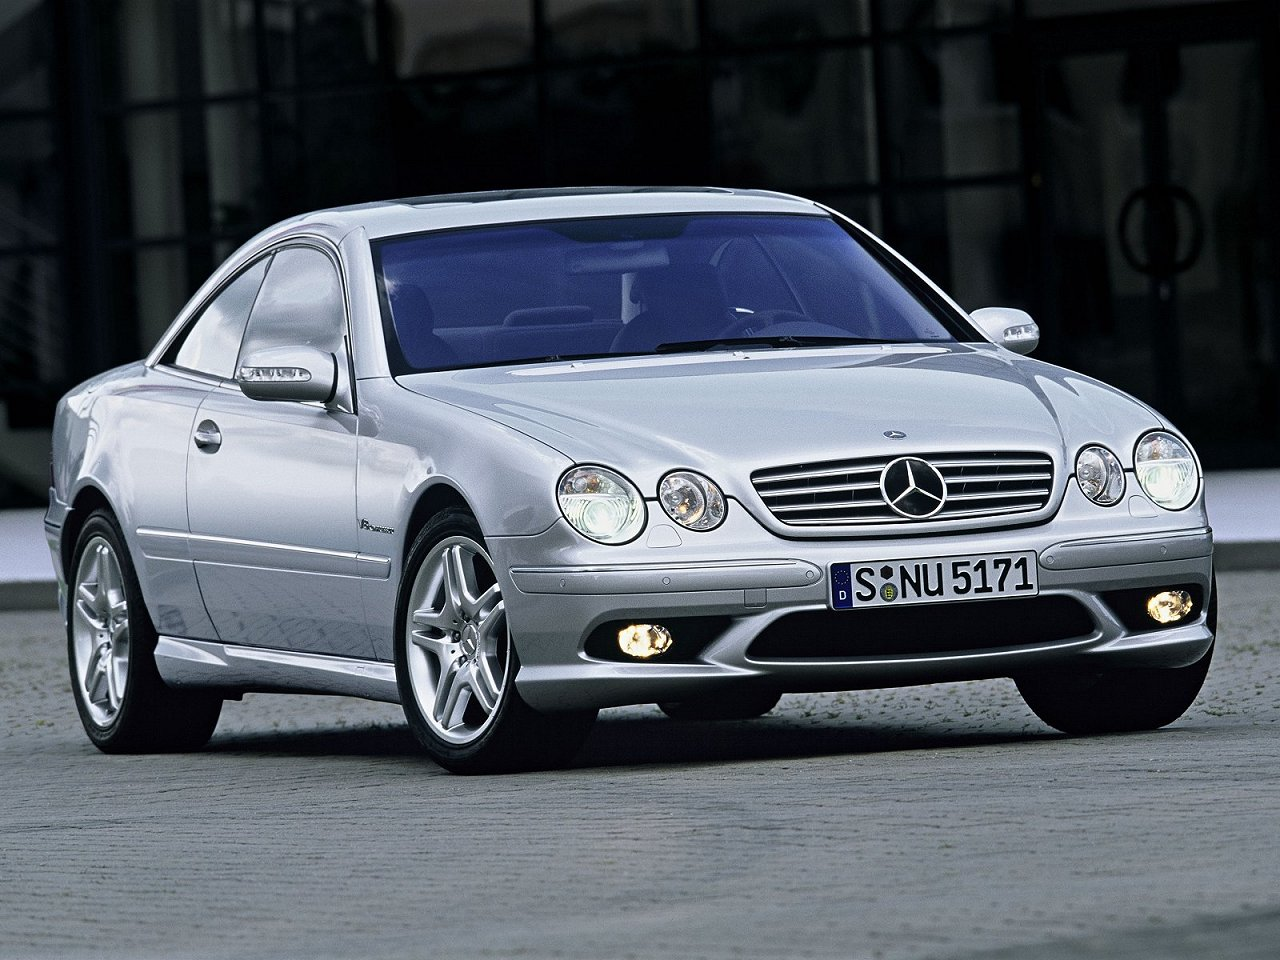 Picture of 2004 Mercedes-Benz CL55 AMG 2 Dr Supercharged Coupe